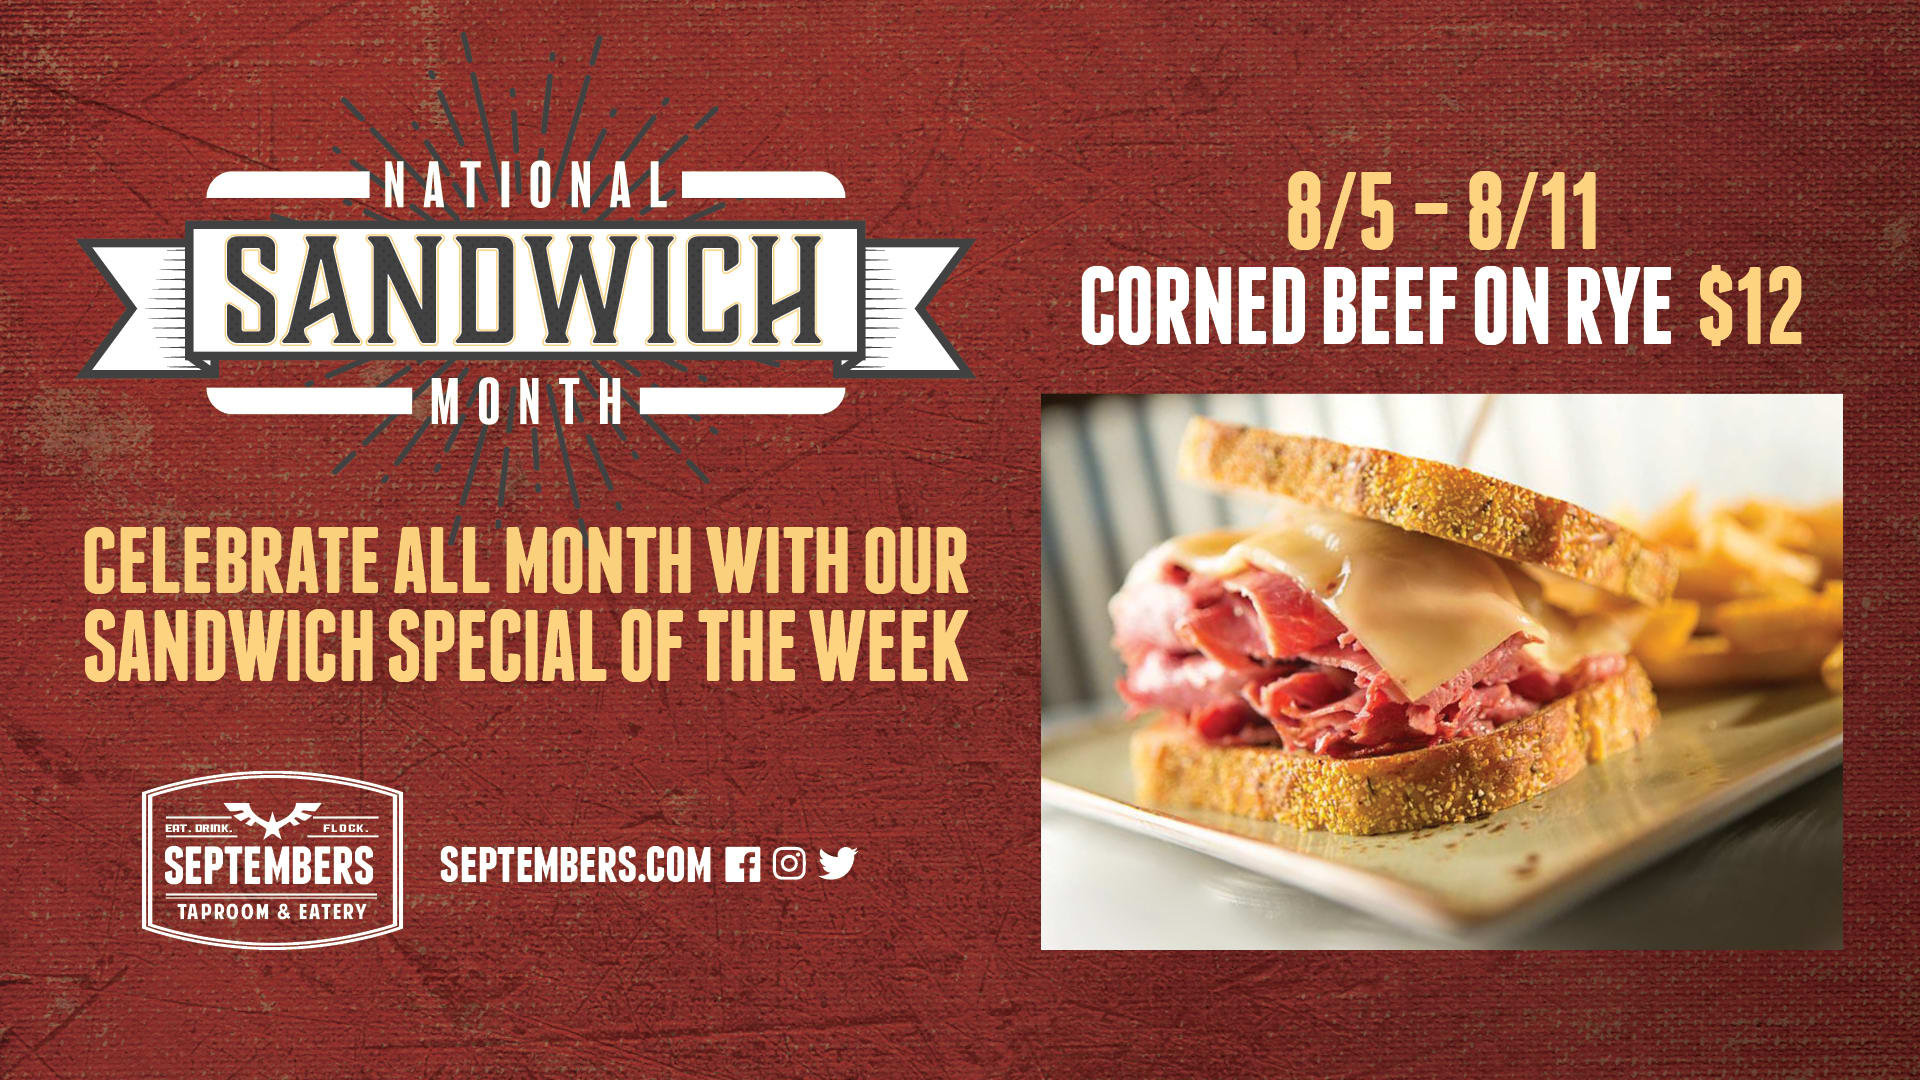 National Sandwich Month - Corned Beef on Rye